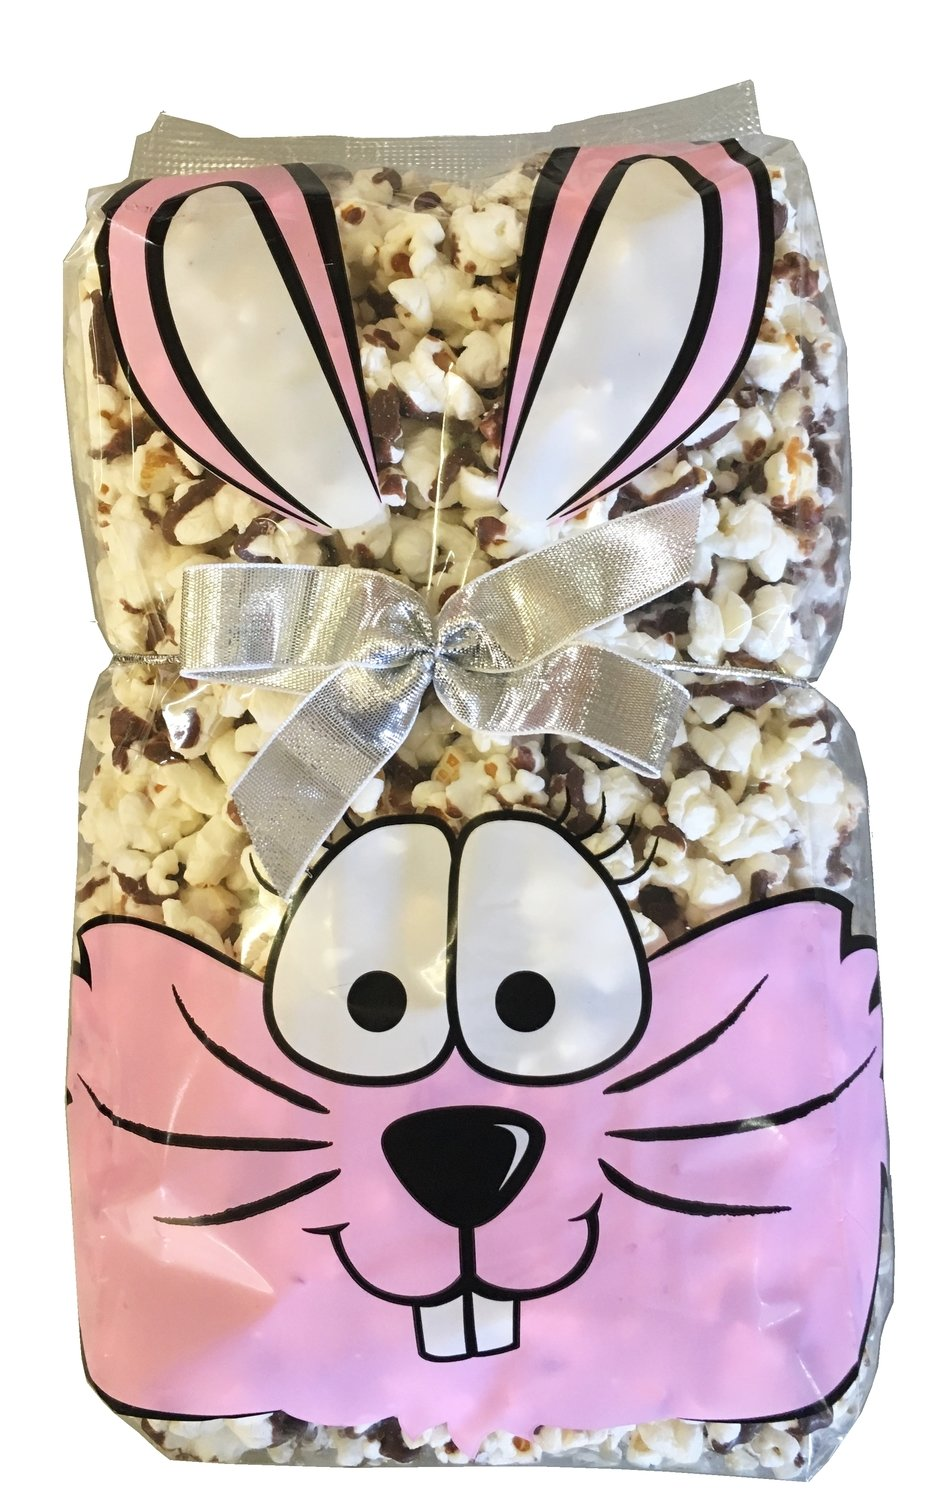 Gourmet Chocolate Drizzled Popcorn (1/2 lb. Bunny Bag With Bow)